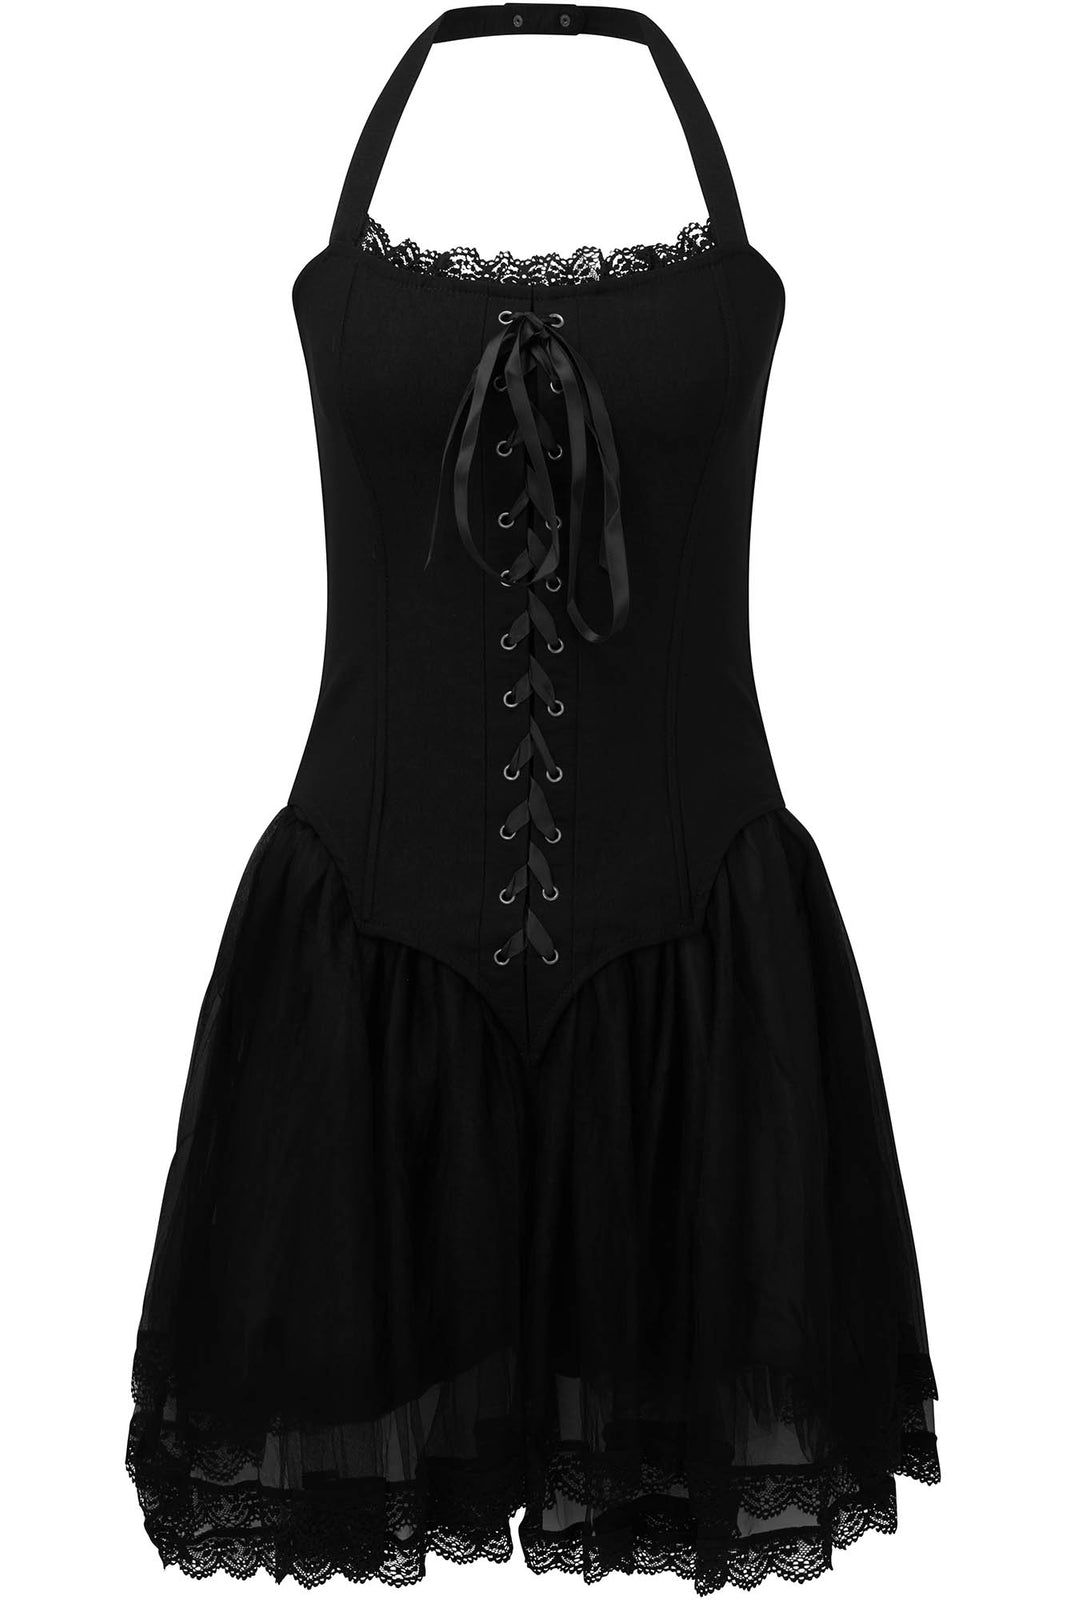 Fun-Eral Doll Dress